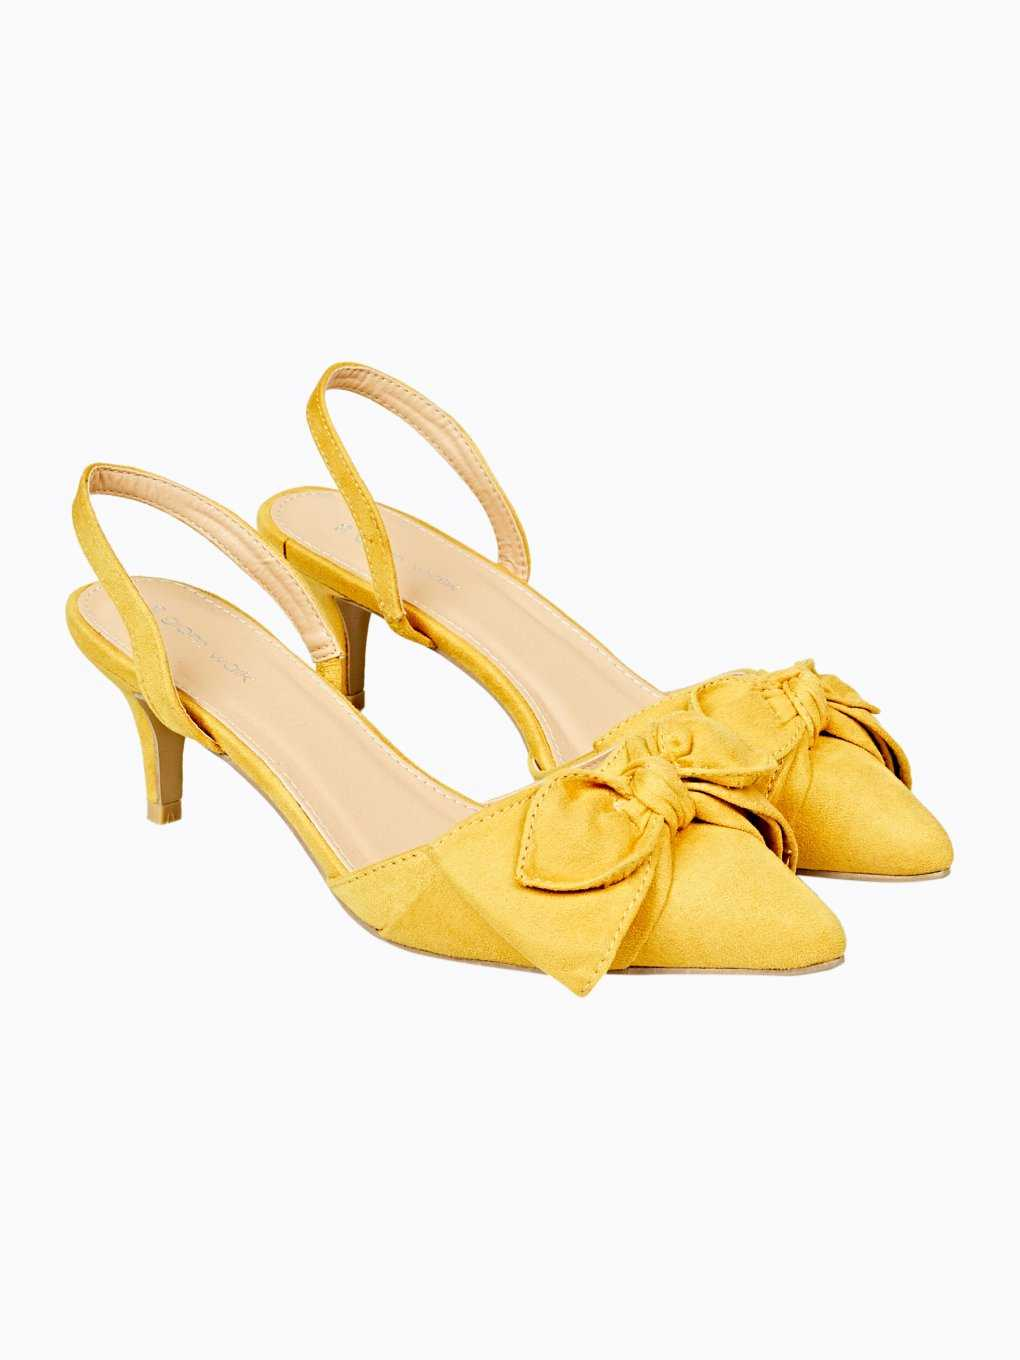 Mid heel slingback shoes with bow